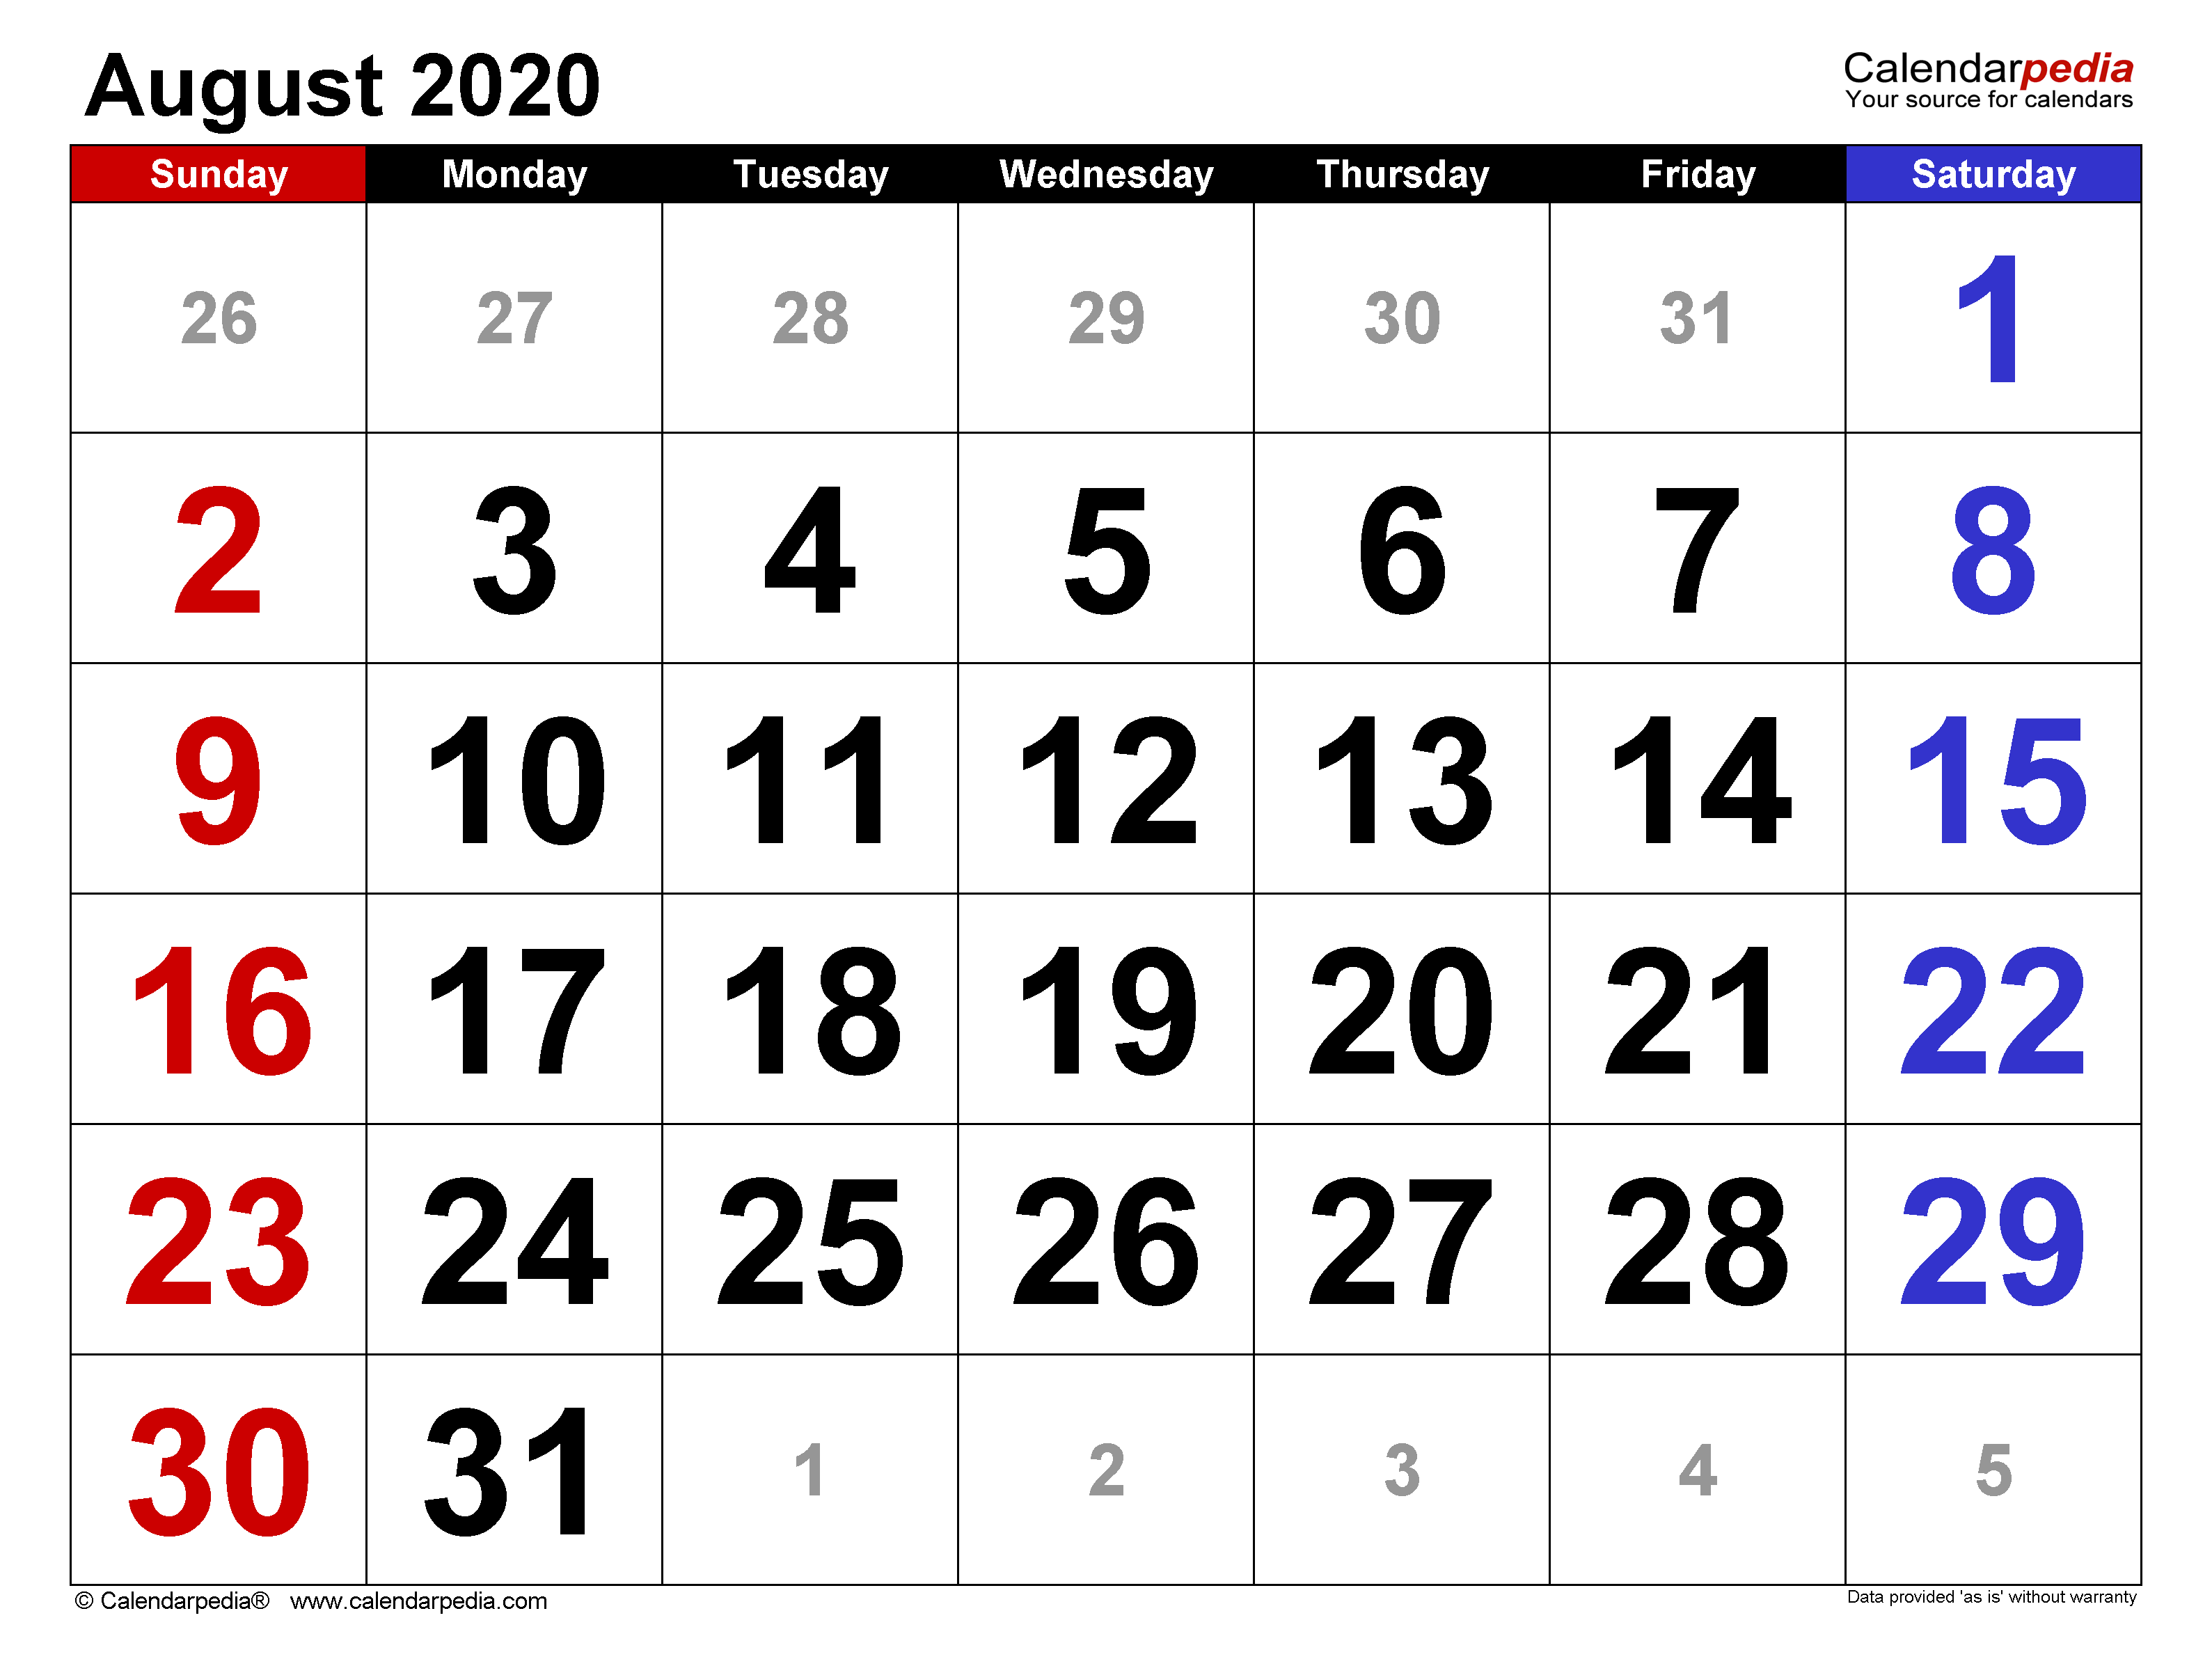 August 2020 Calendar | Templates for Word, Excel and PDF